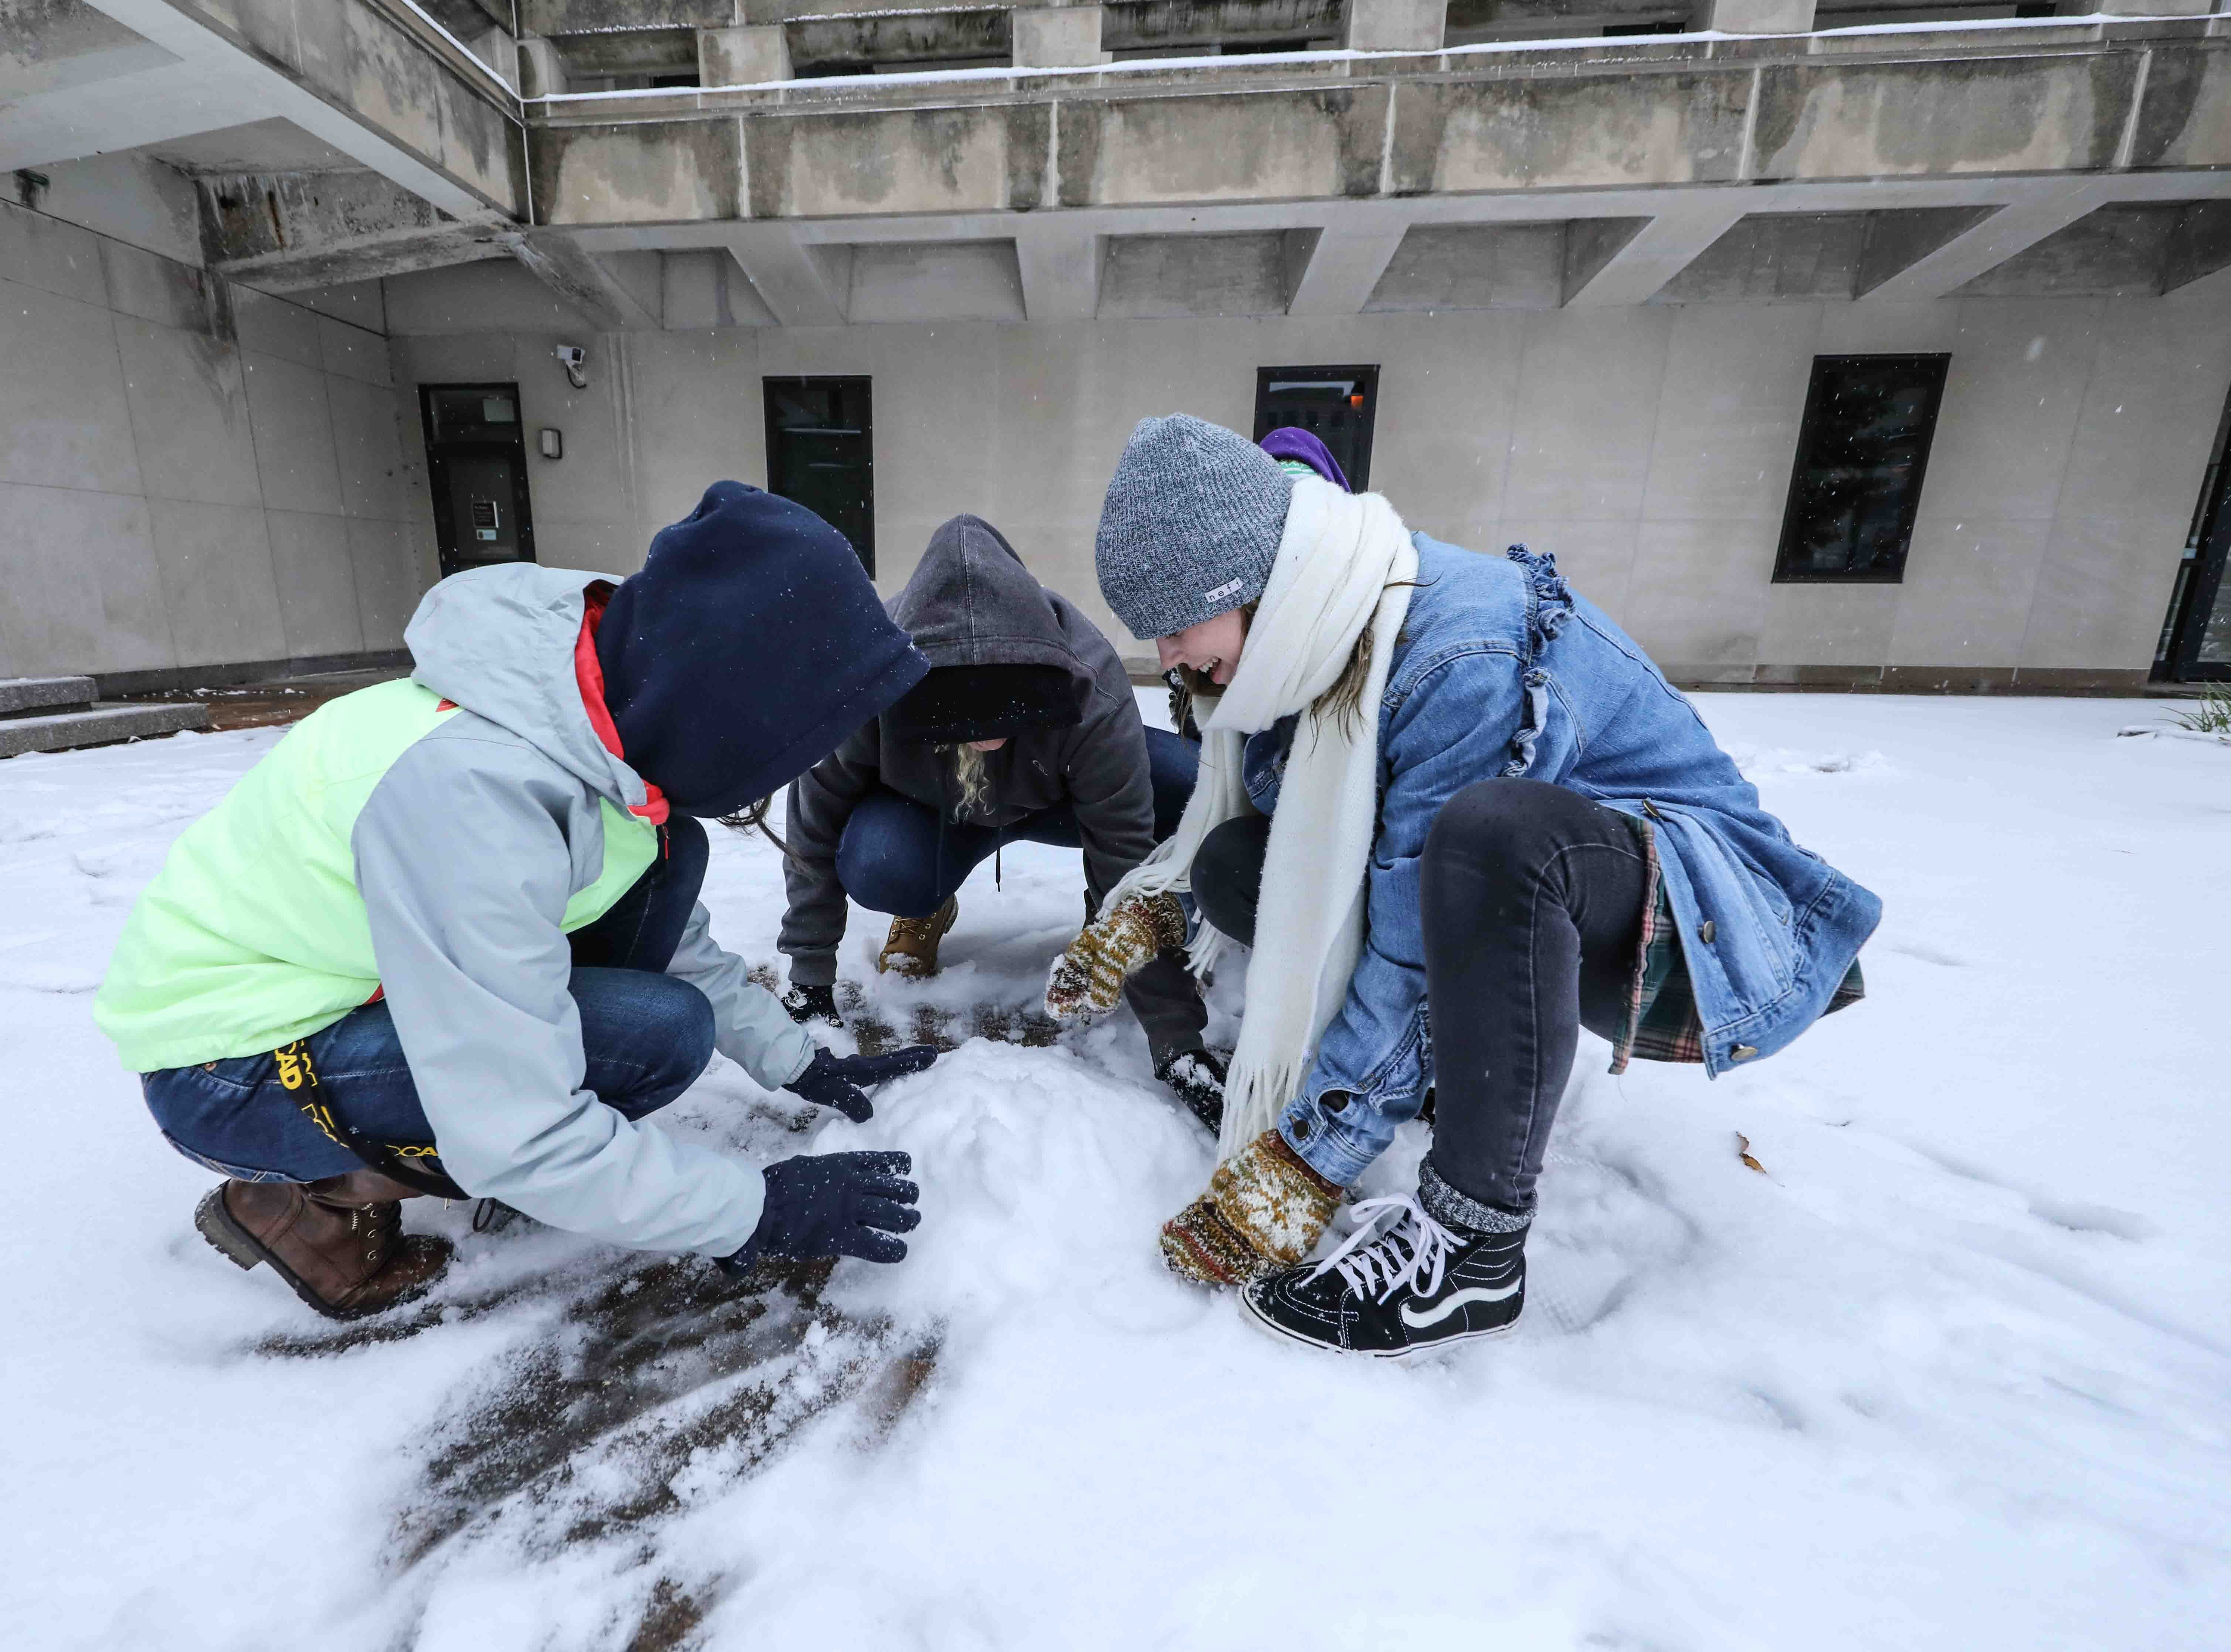 A group of teenagers attempt to build a snowman during a November snowfall on Thursday, Nov. 15, 2018, in Wilmington.